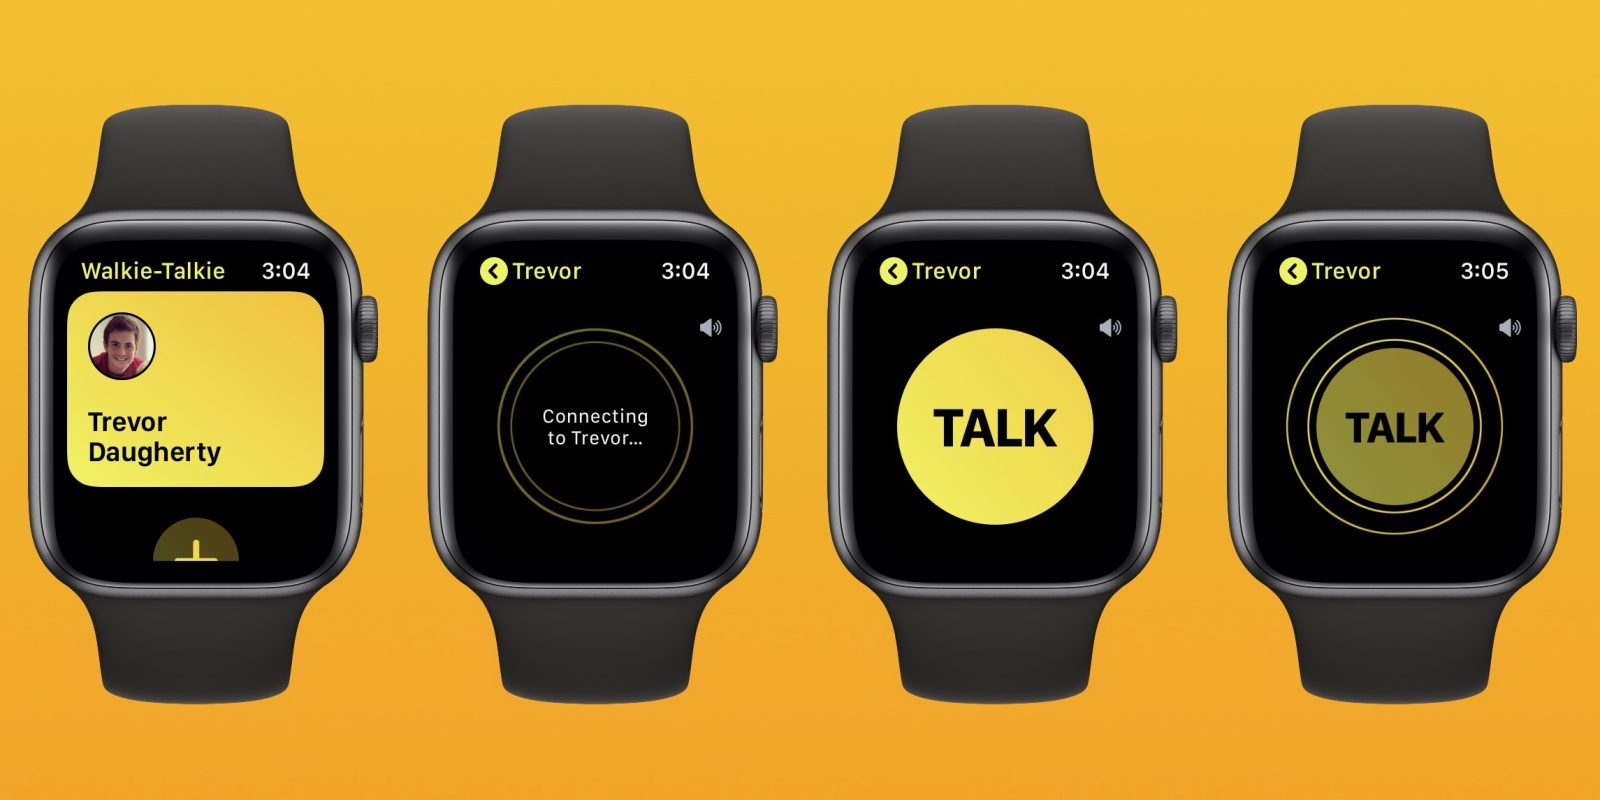 How to use Tap to Talk with Walkie-Talkie on Apple Watch